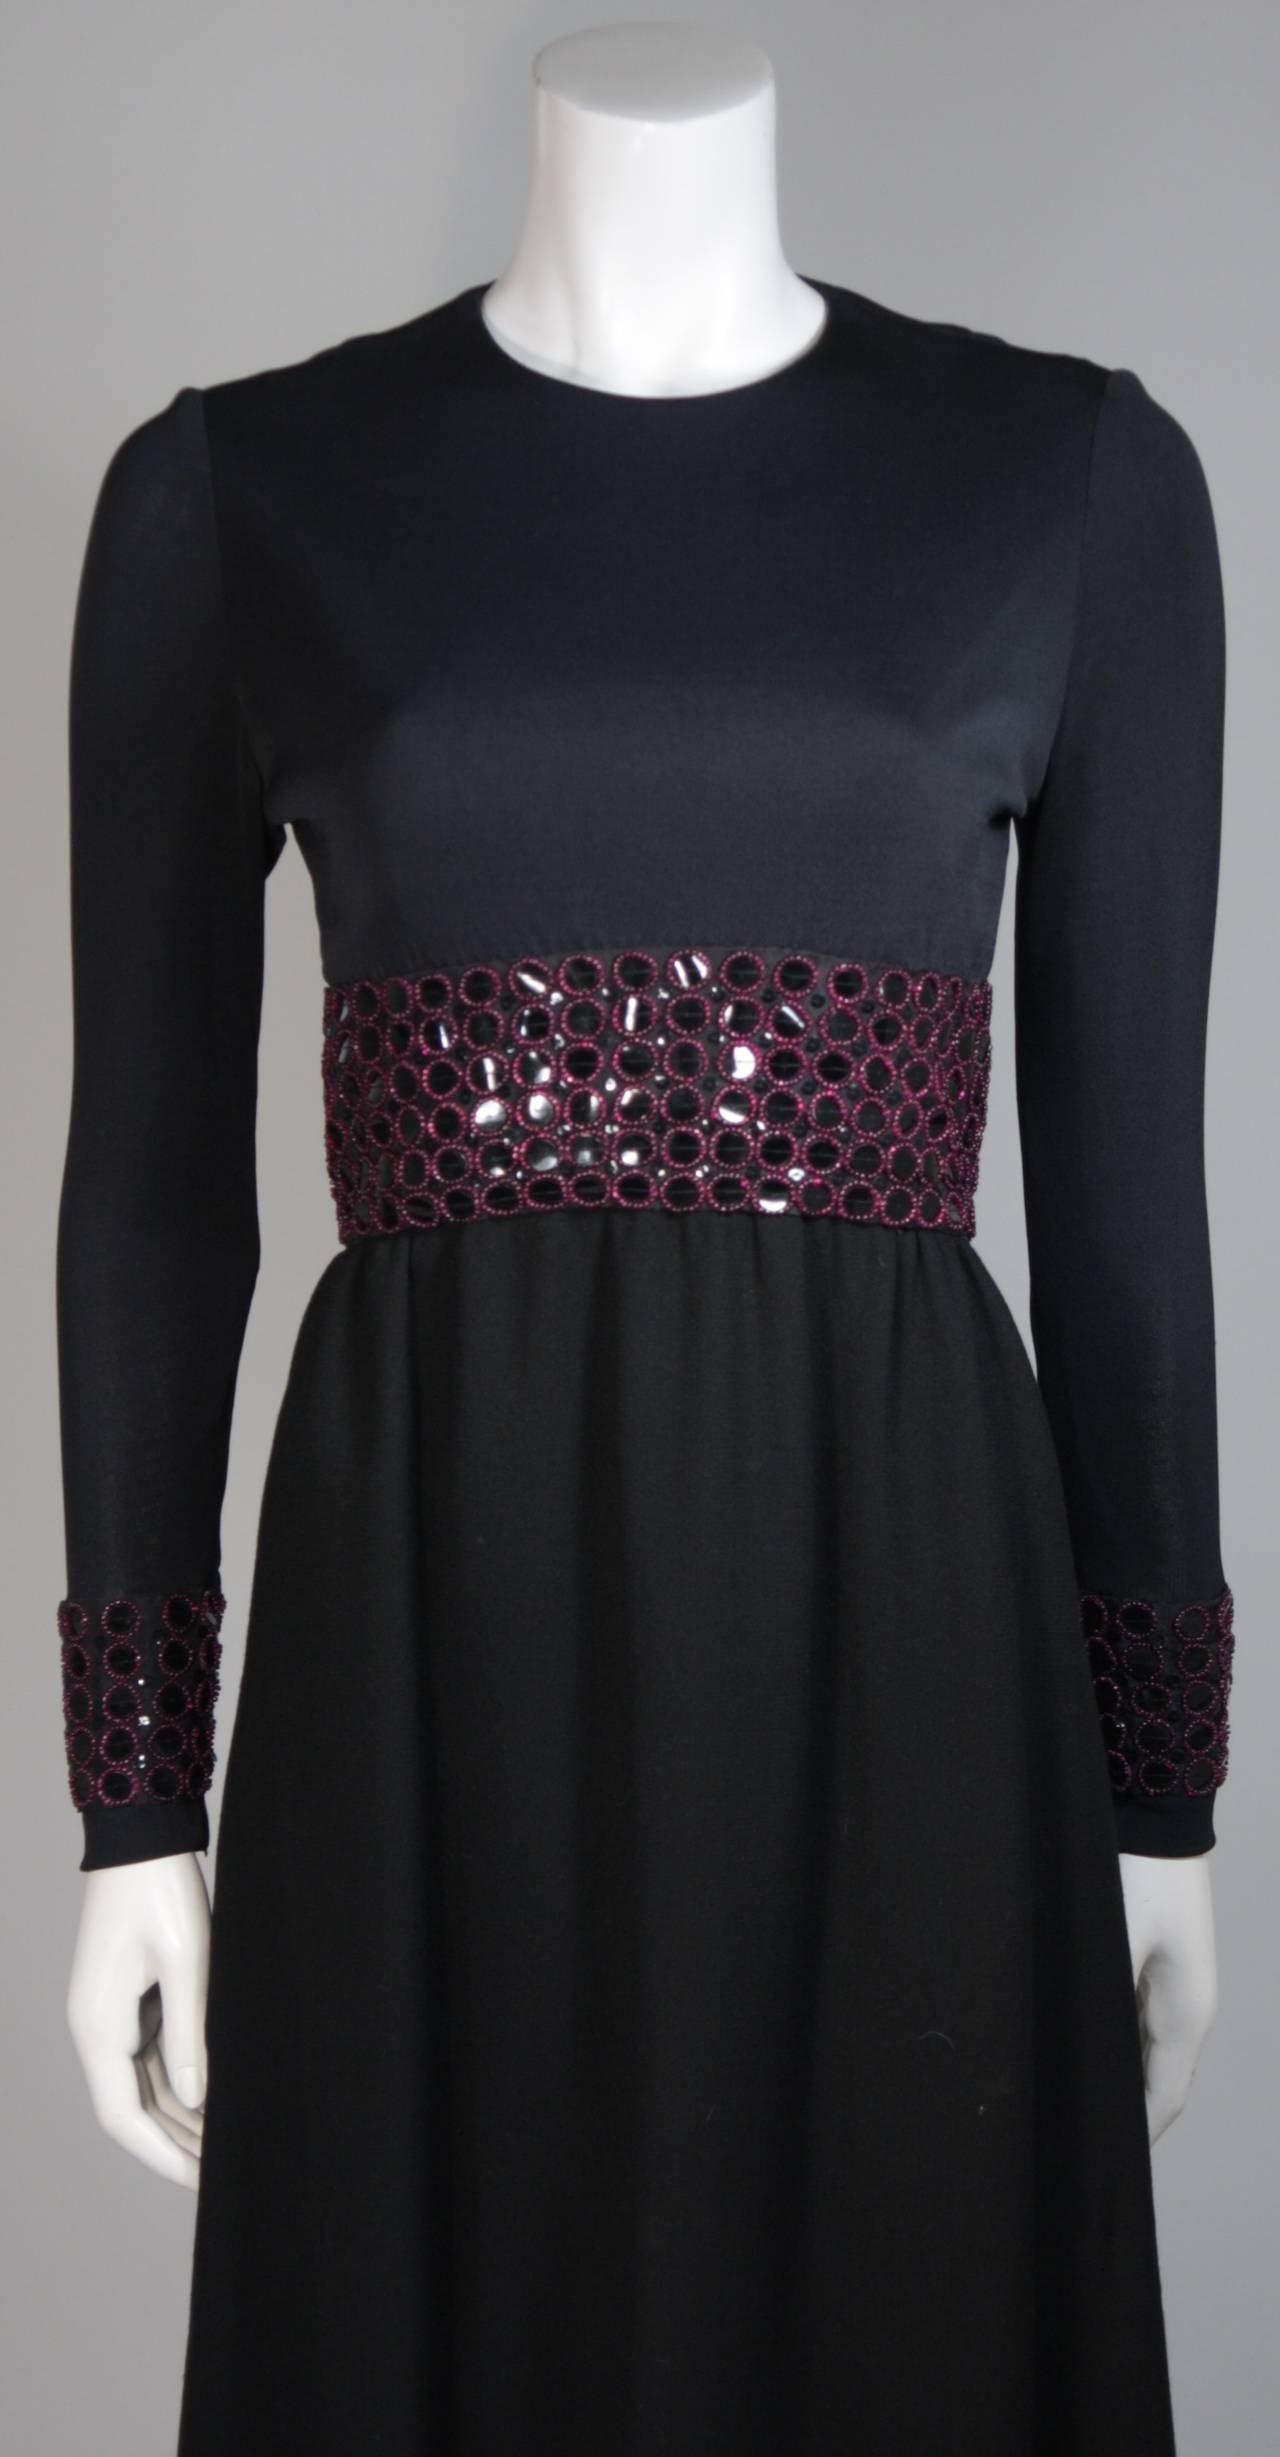 Chester Weinberg Black Long Sleeve Gown With Beaded Waist Size S M 4